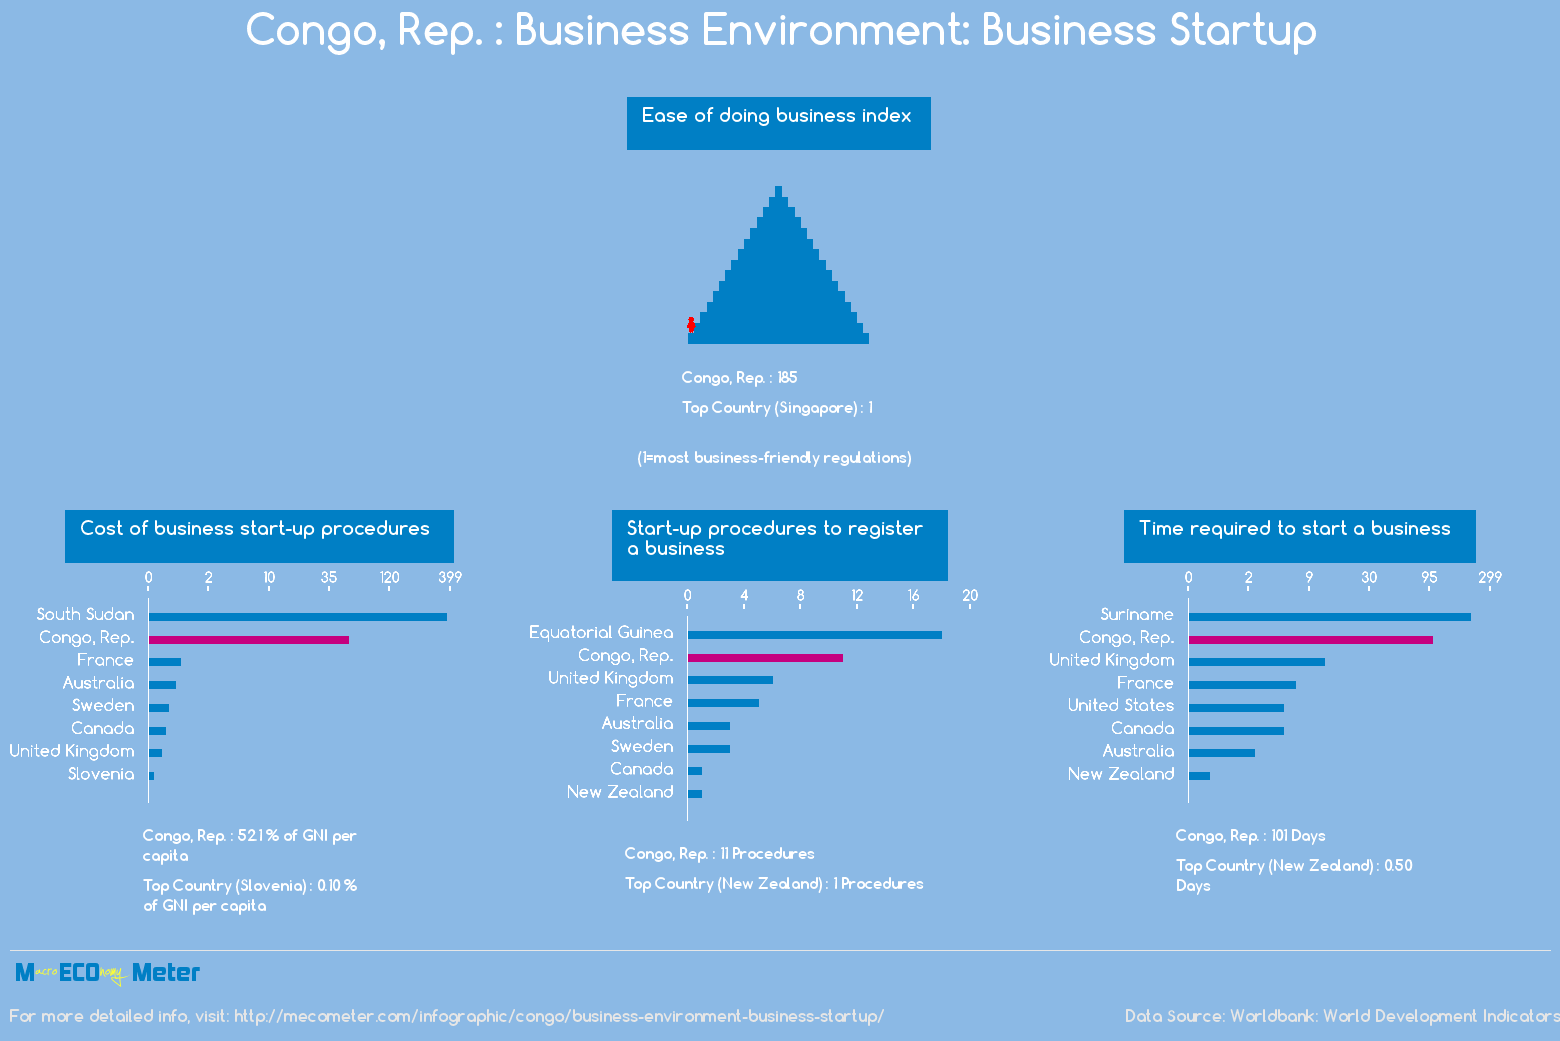 Congo, Rep. : Business Environment: Business Startup